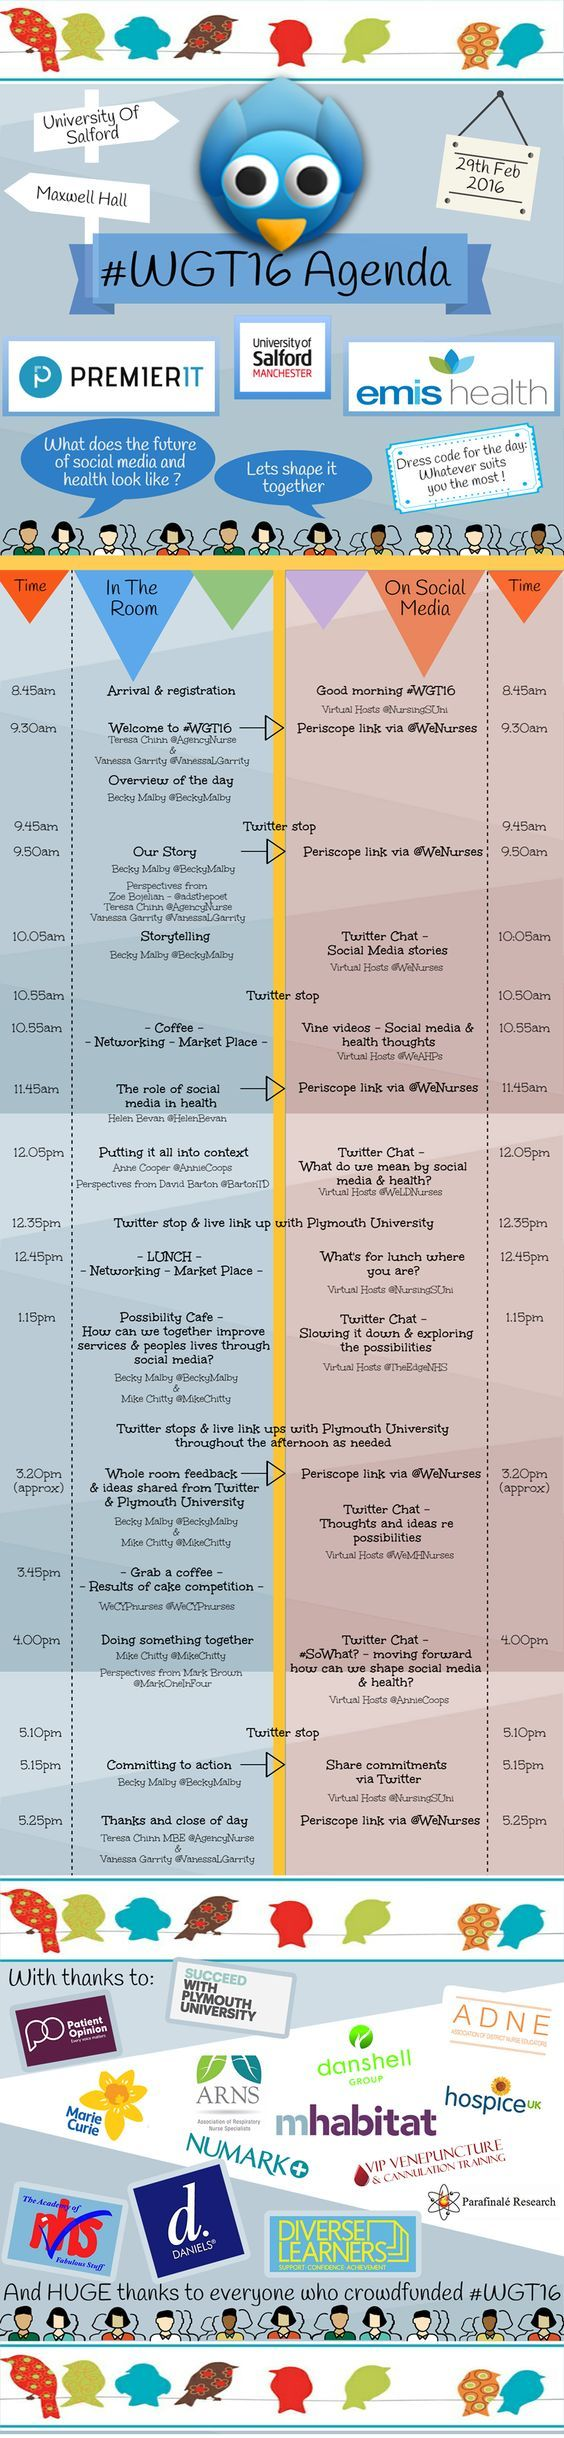 The in the room and social media agenda for #WGT16